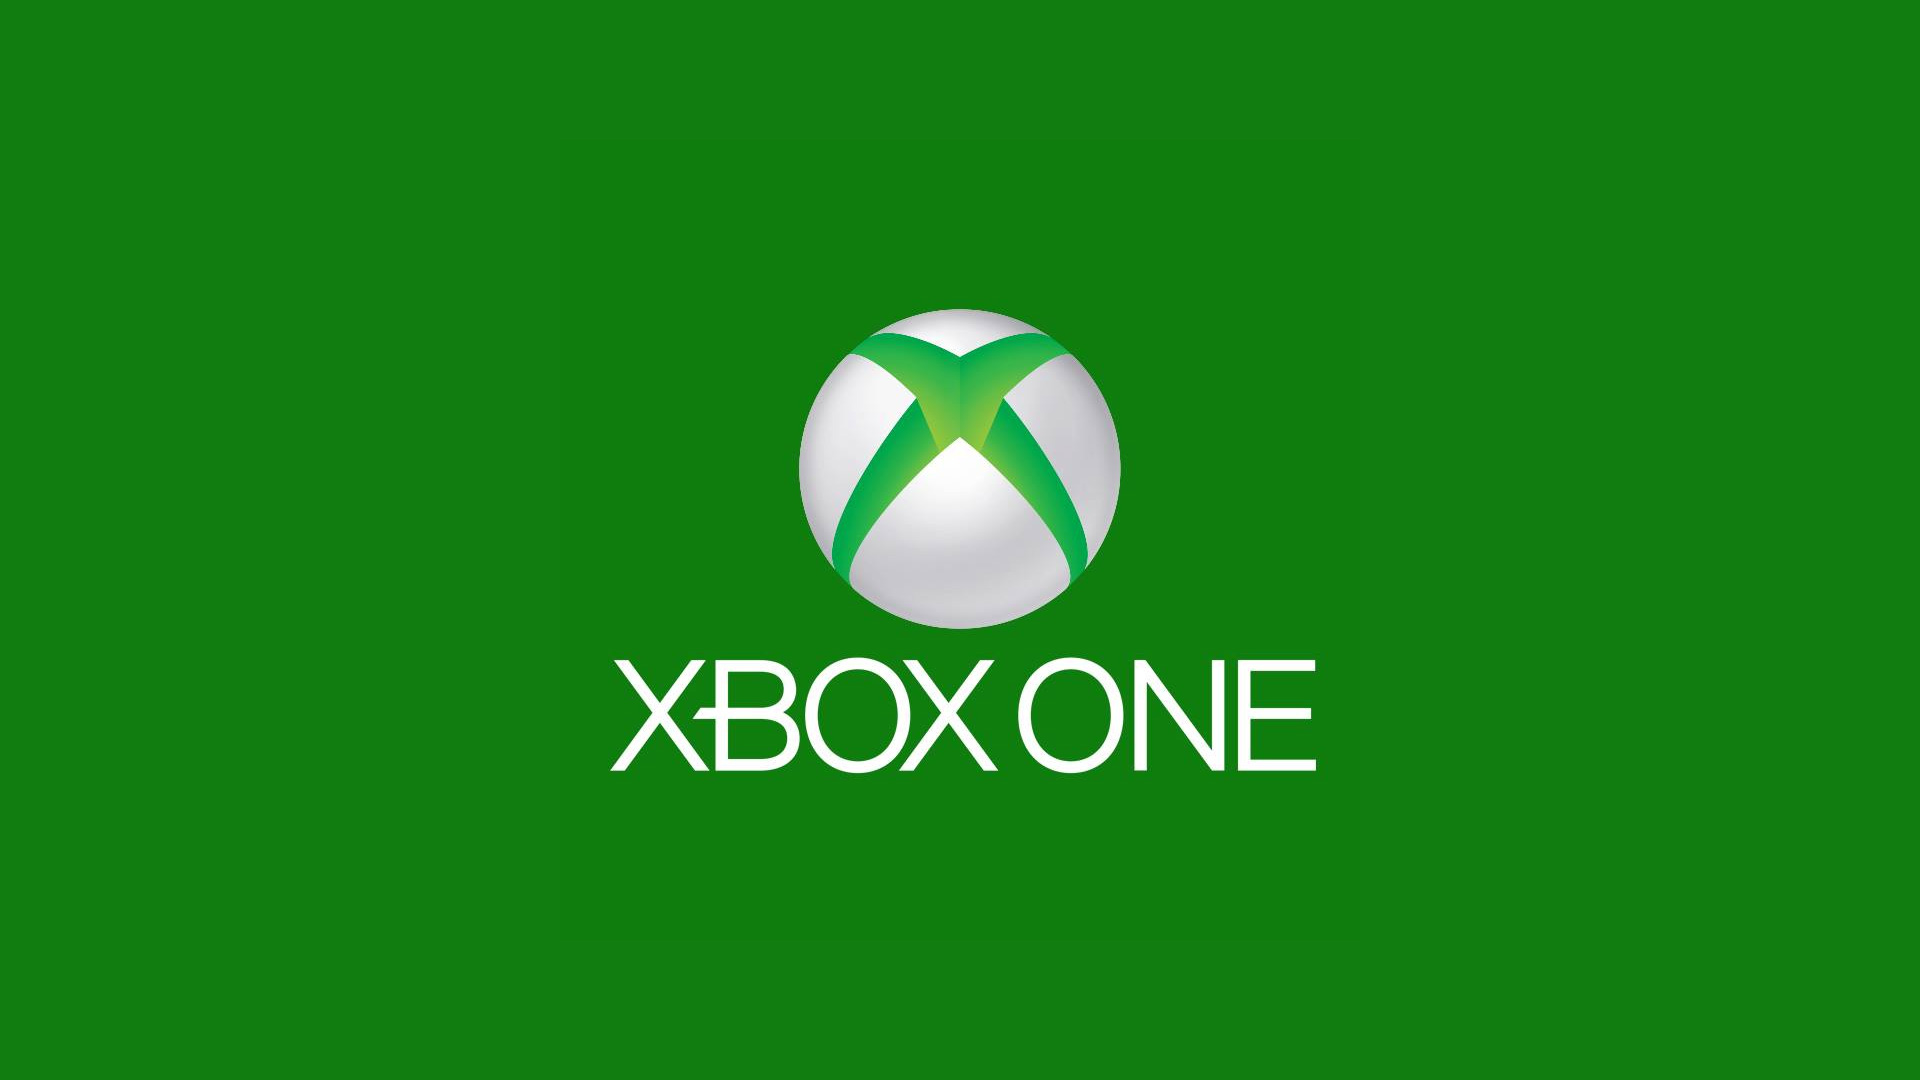 One Wallpaper | Free Xbox One | Microsoft | Gamers | free online games ...